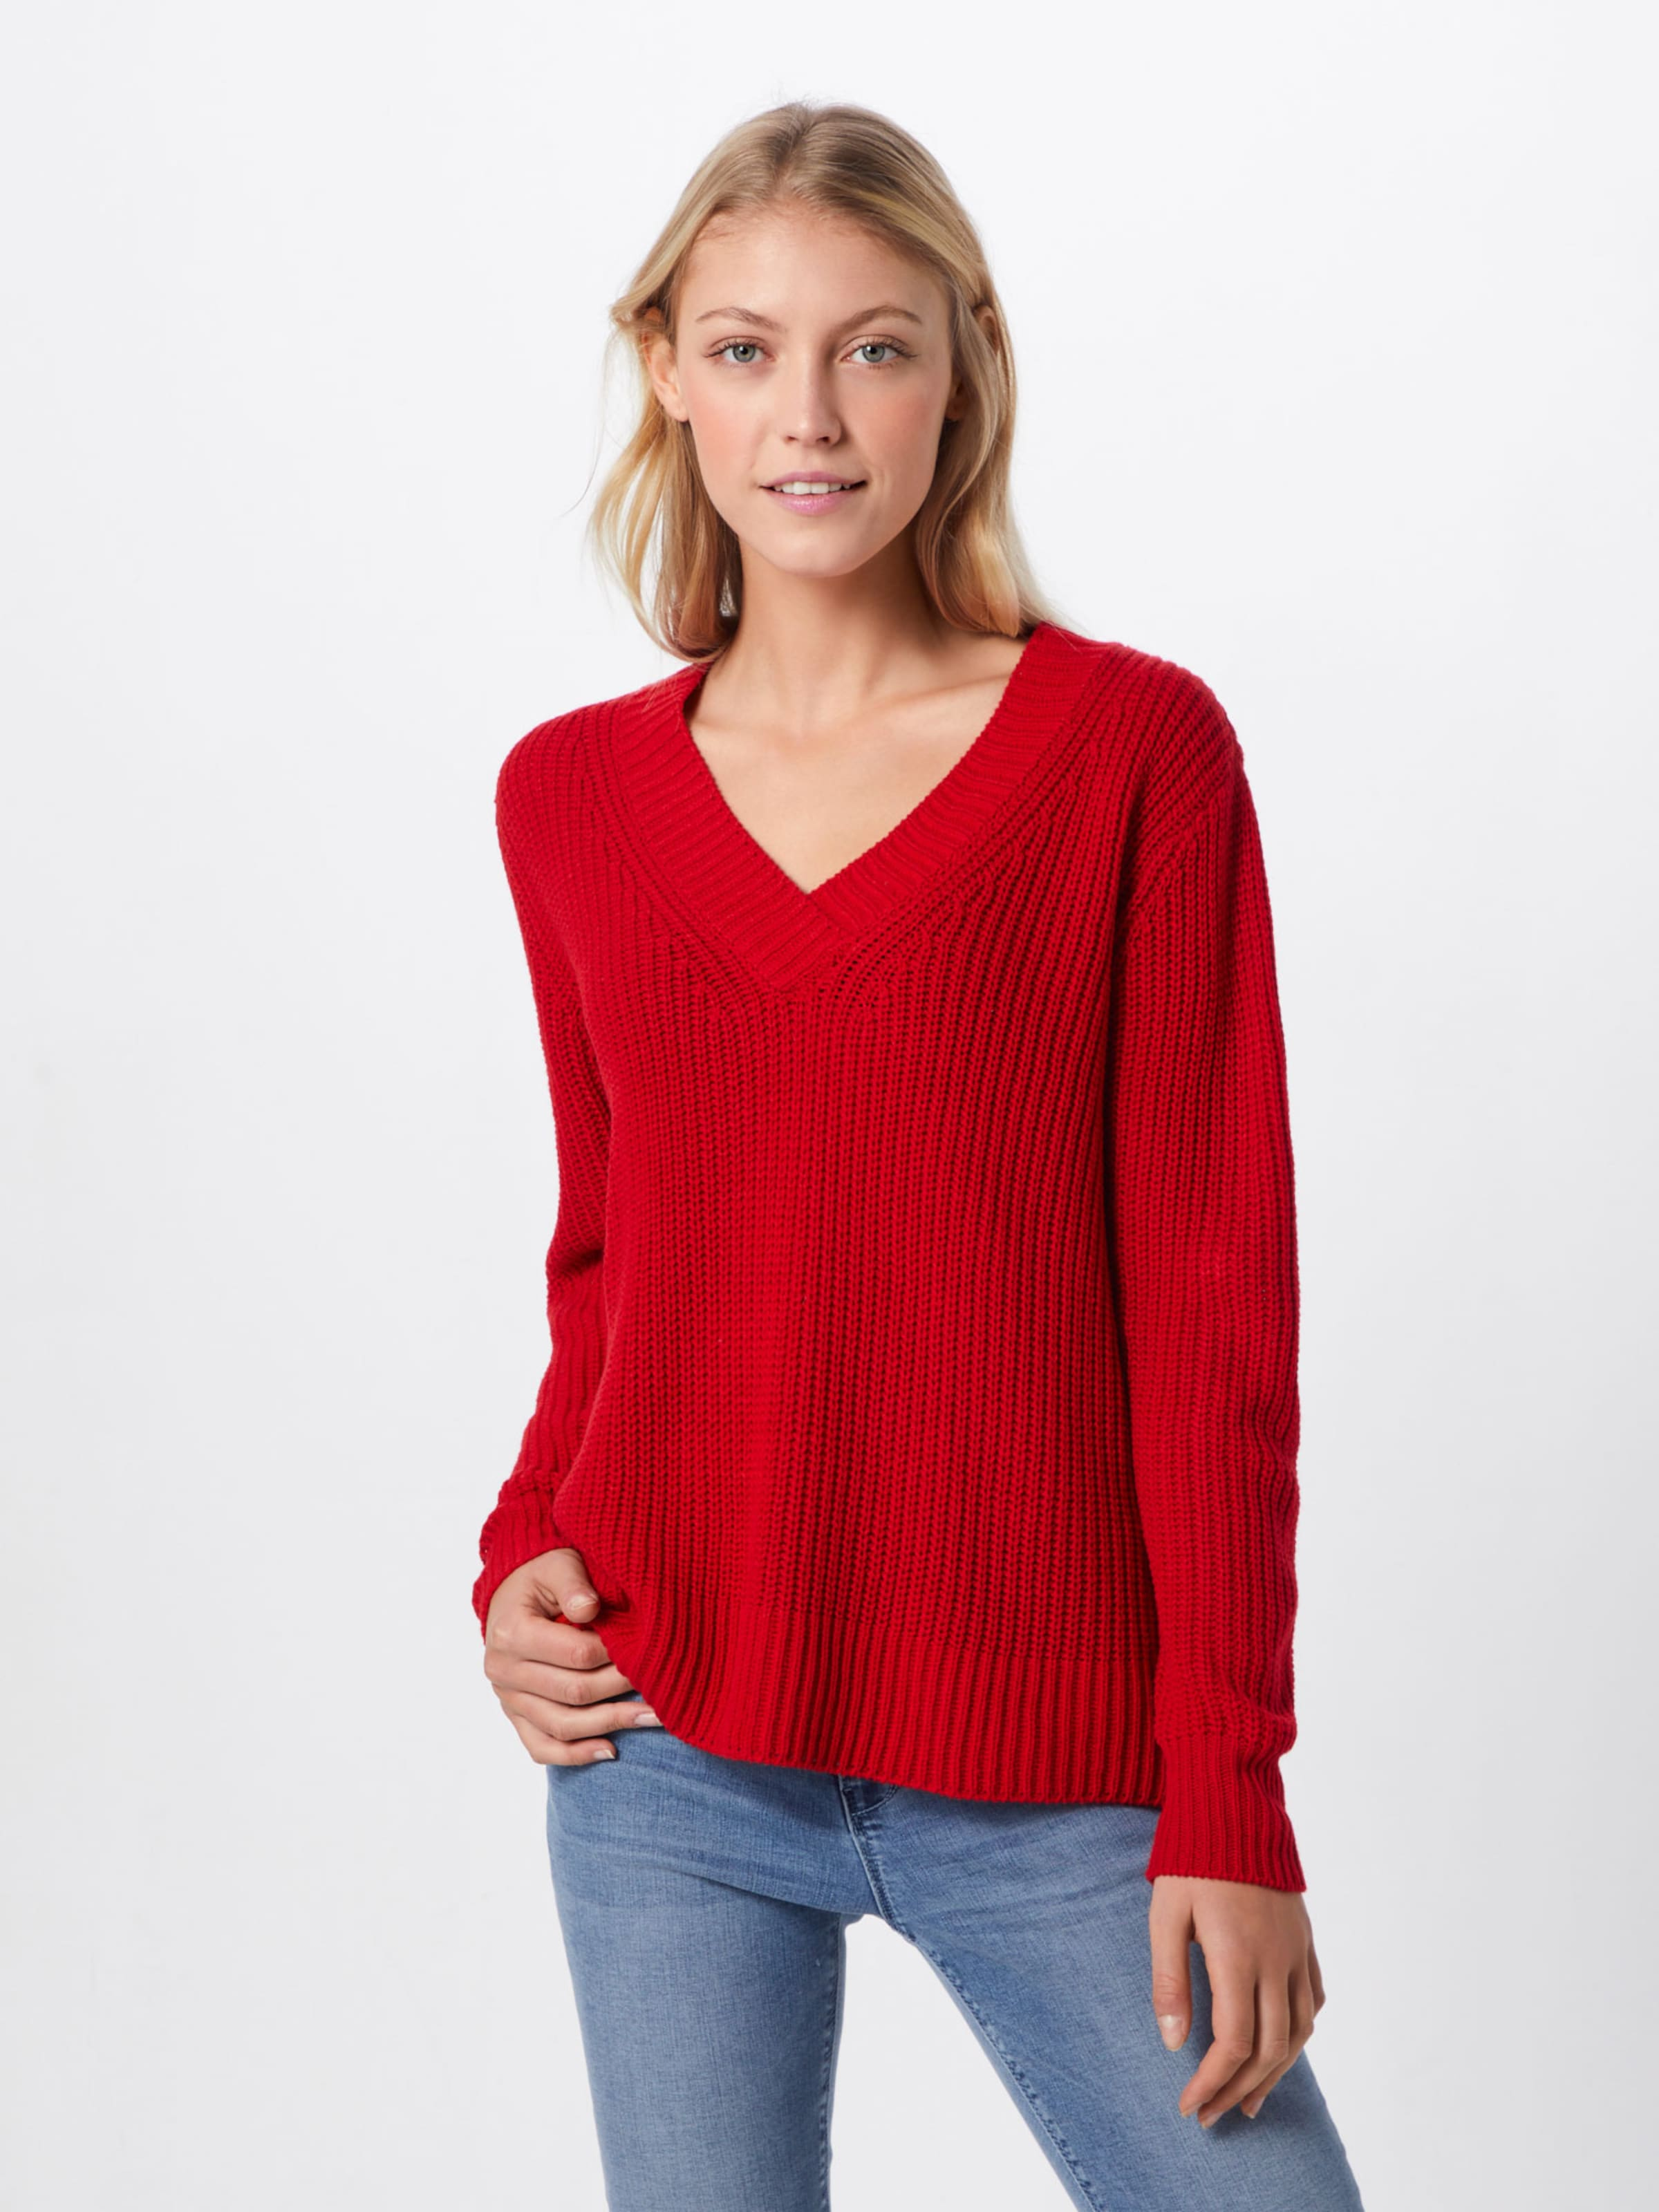 Pullover 'pcsalia' Pieces In Pullover Pieces Rot 'pcsalia' Rot In gyf67b